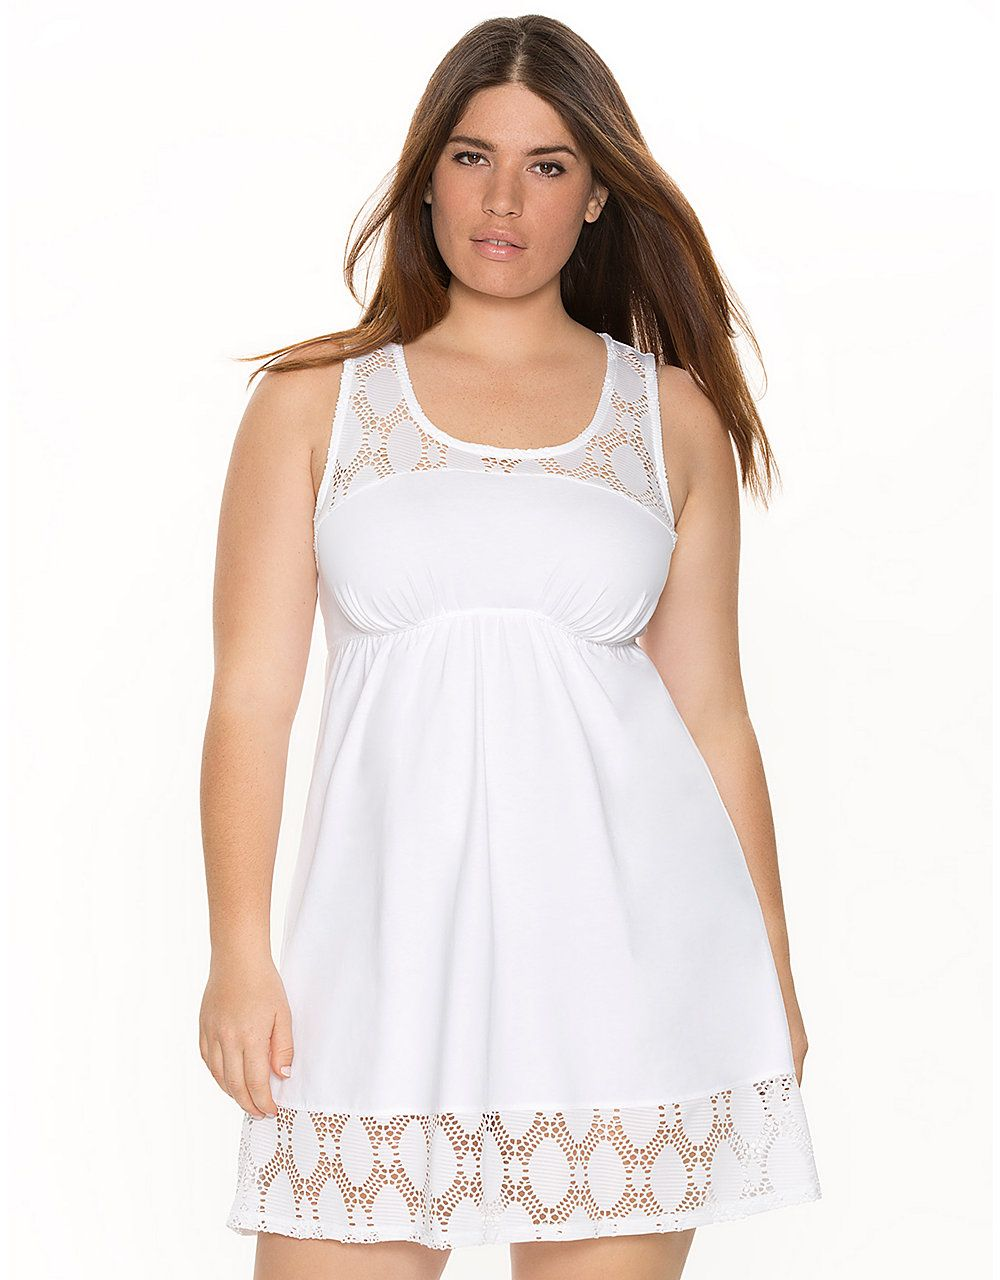 79deafb052e Eyelet Knit Chemise by Cacique